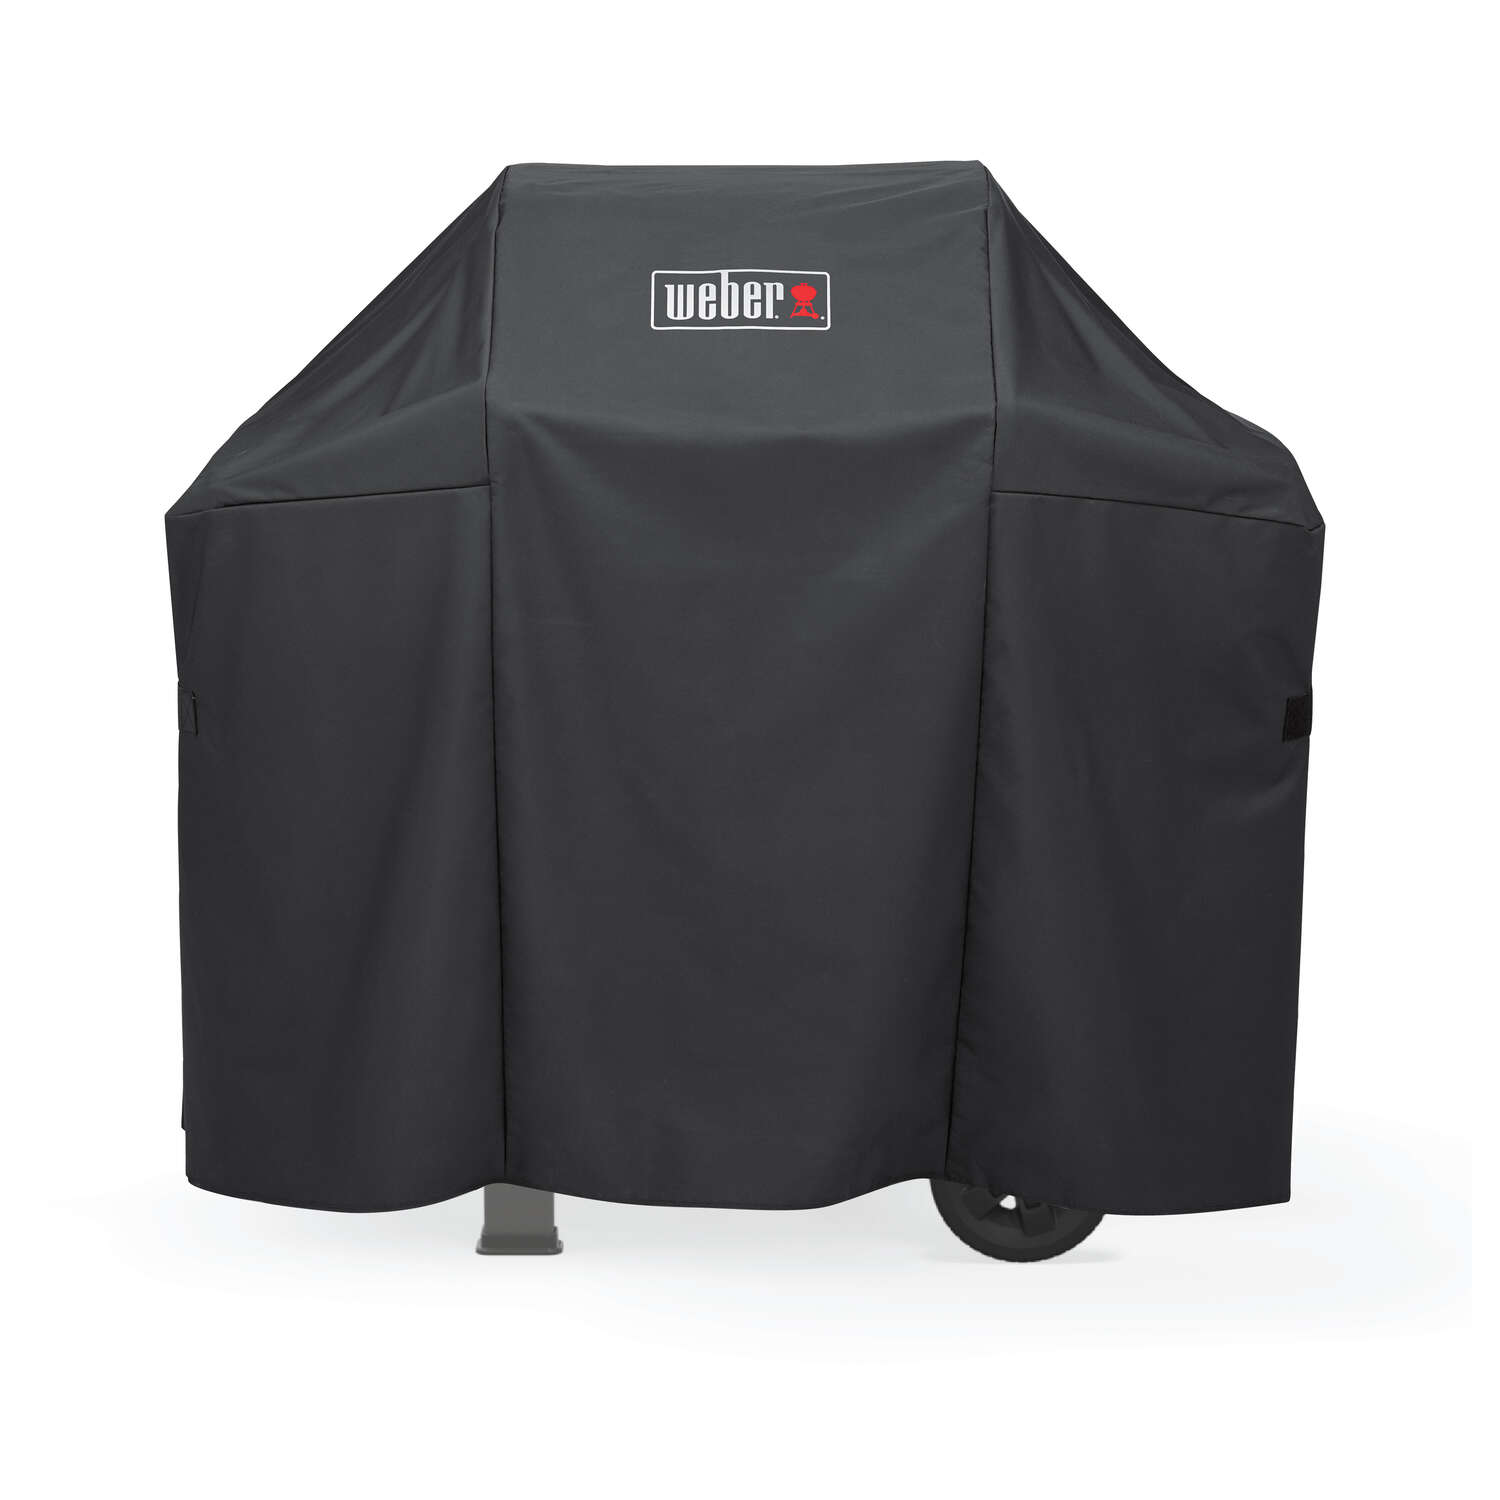 Weber Black Grill Cover For Spirit 200 and Spirit II 200 Series Gas Grills 48 in. W x 42 in. H